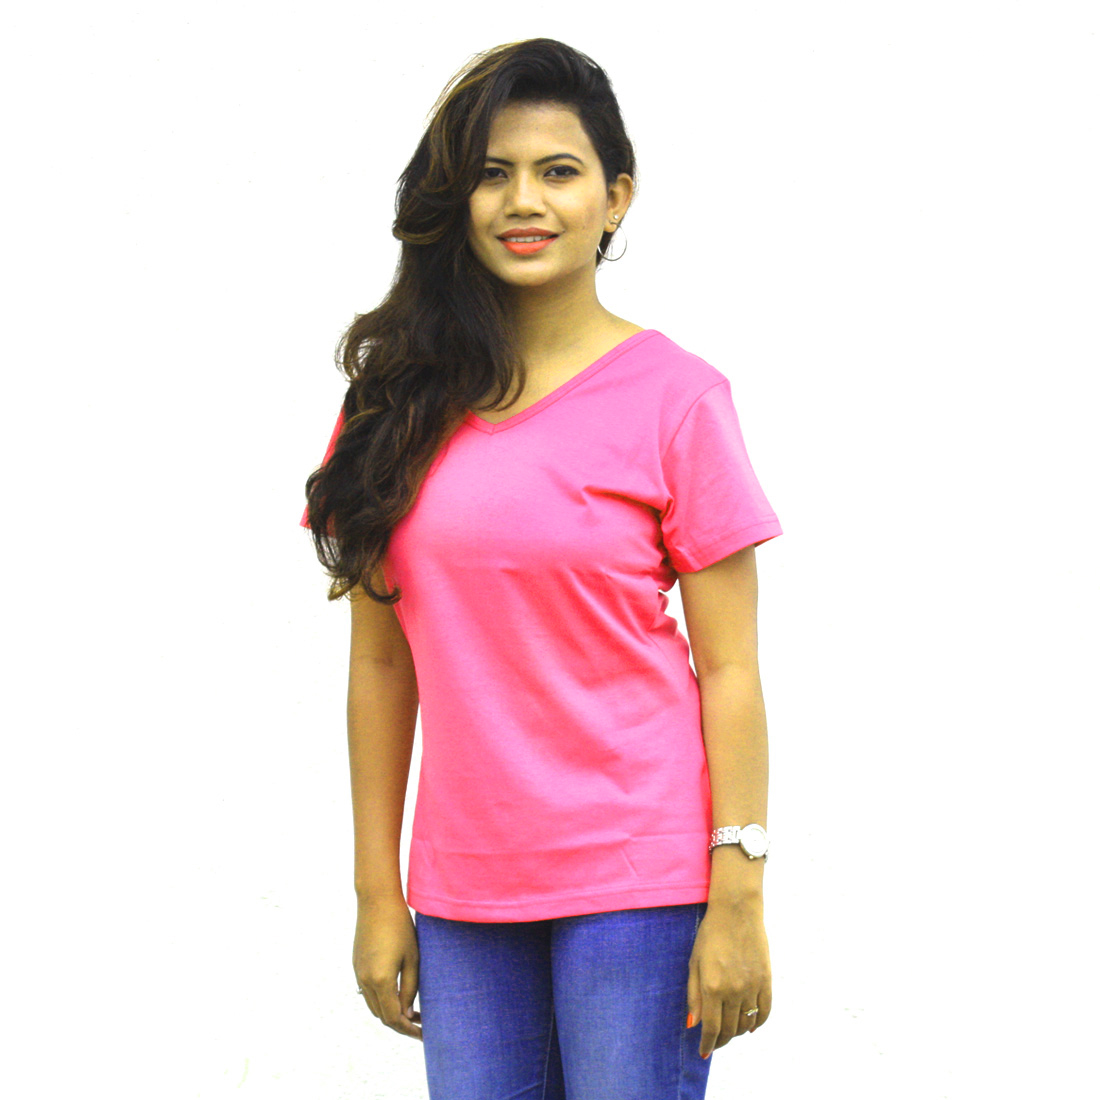 Wiluminaty Organic Cotton V-neck Ladies T-shirt - Pink (5XL)